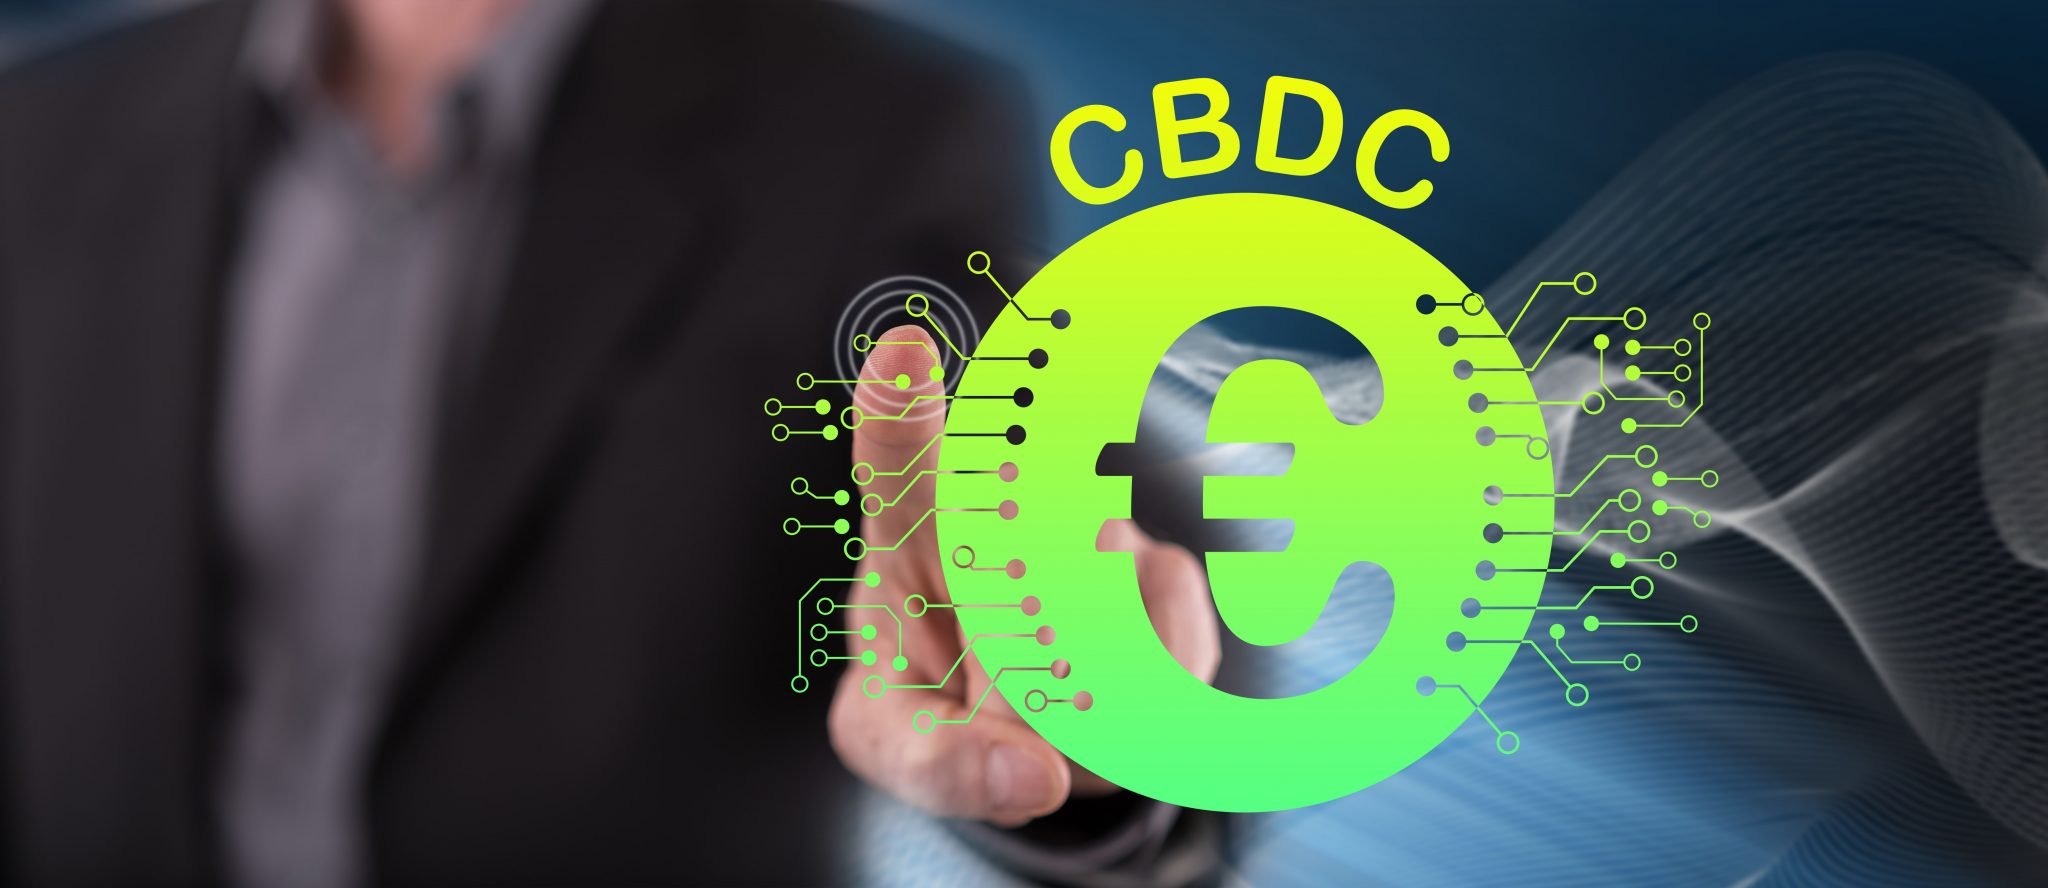 Man touching a cbdc concept on a touch screen with his finger